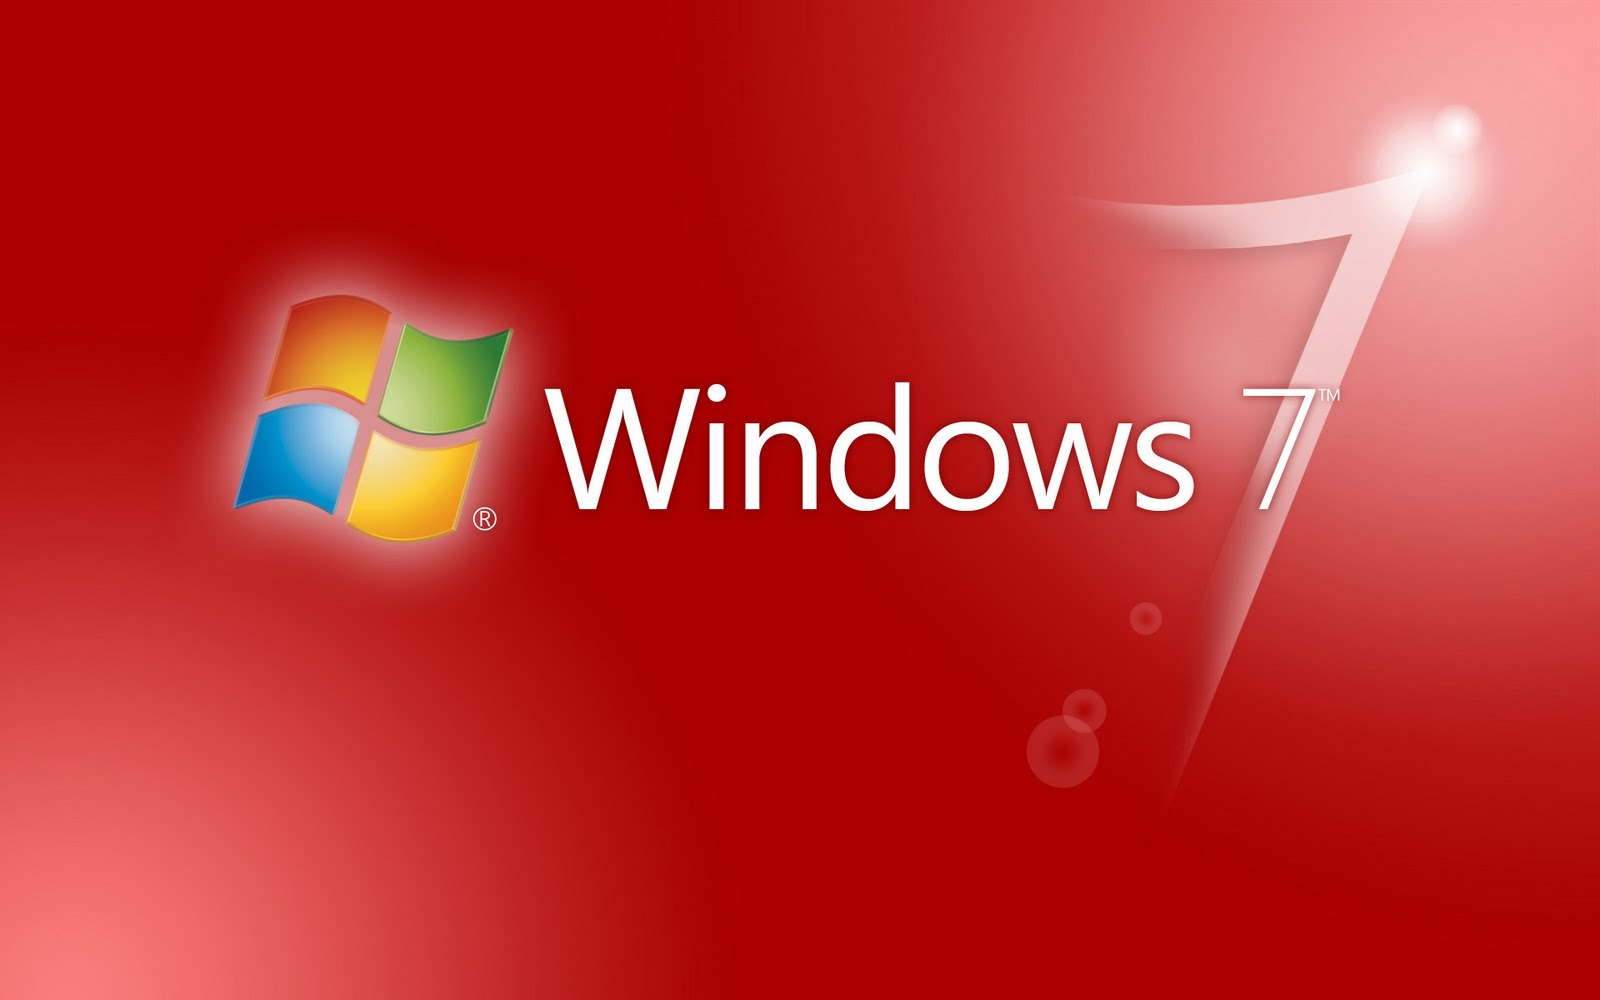 logo amp logo wallpaper collection windows seven 7 logo